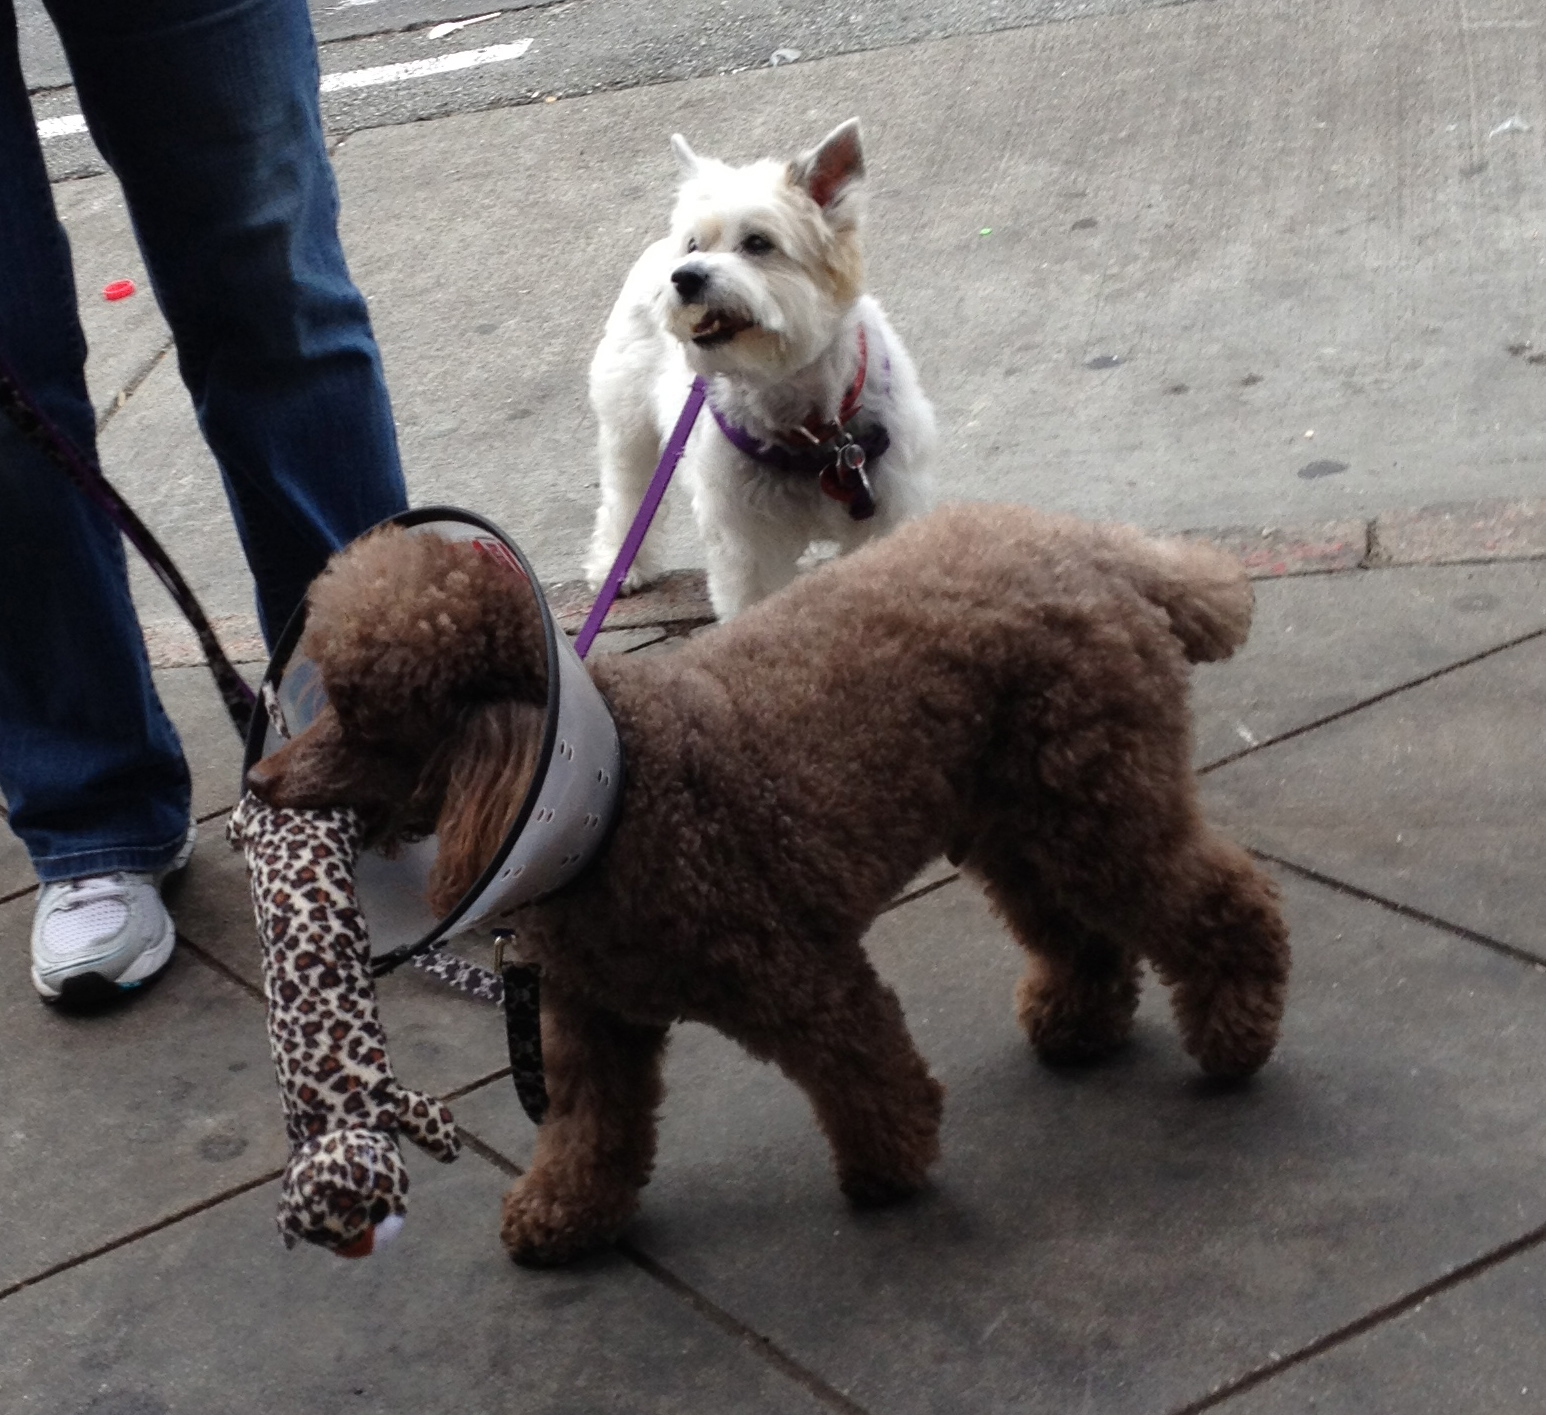 Brown Miniature Poodle and West Highland White Terrier